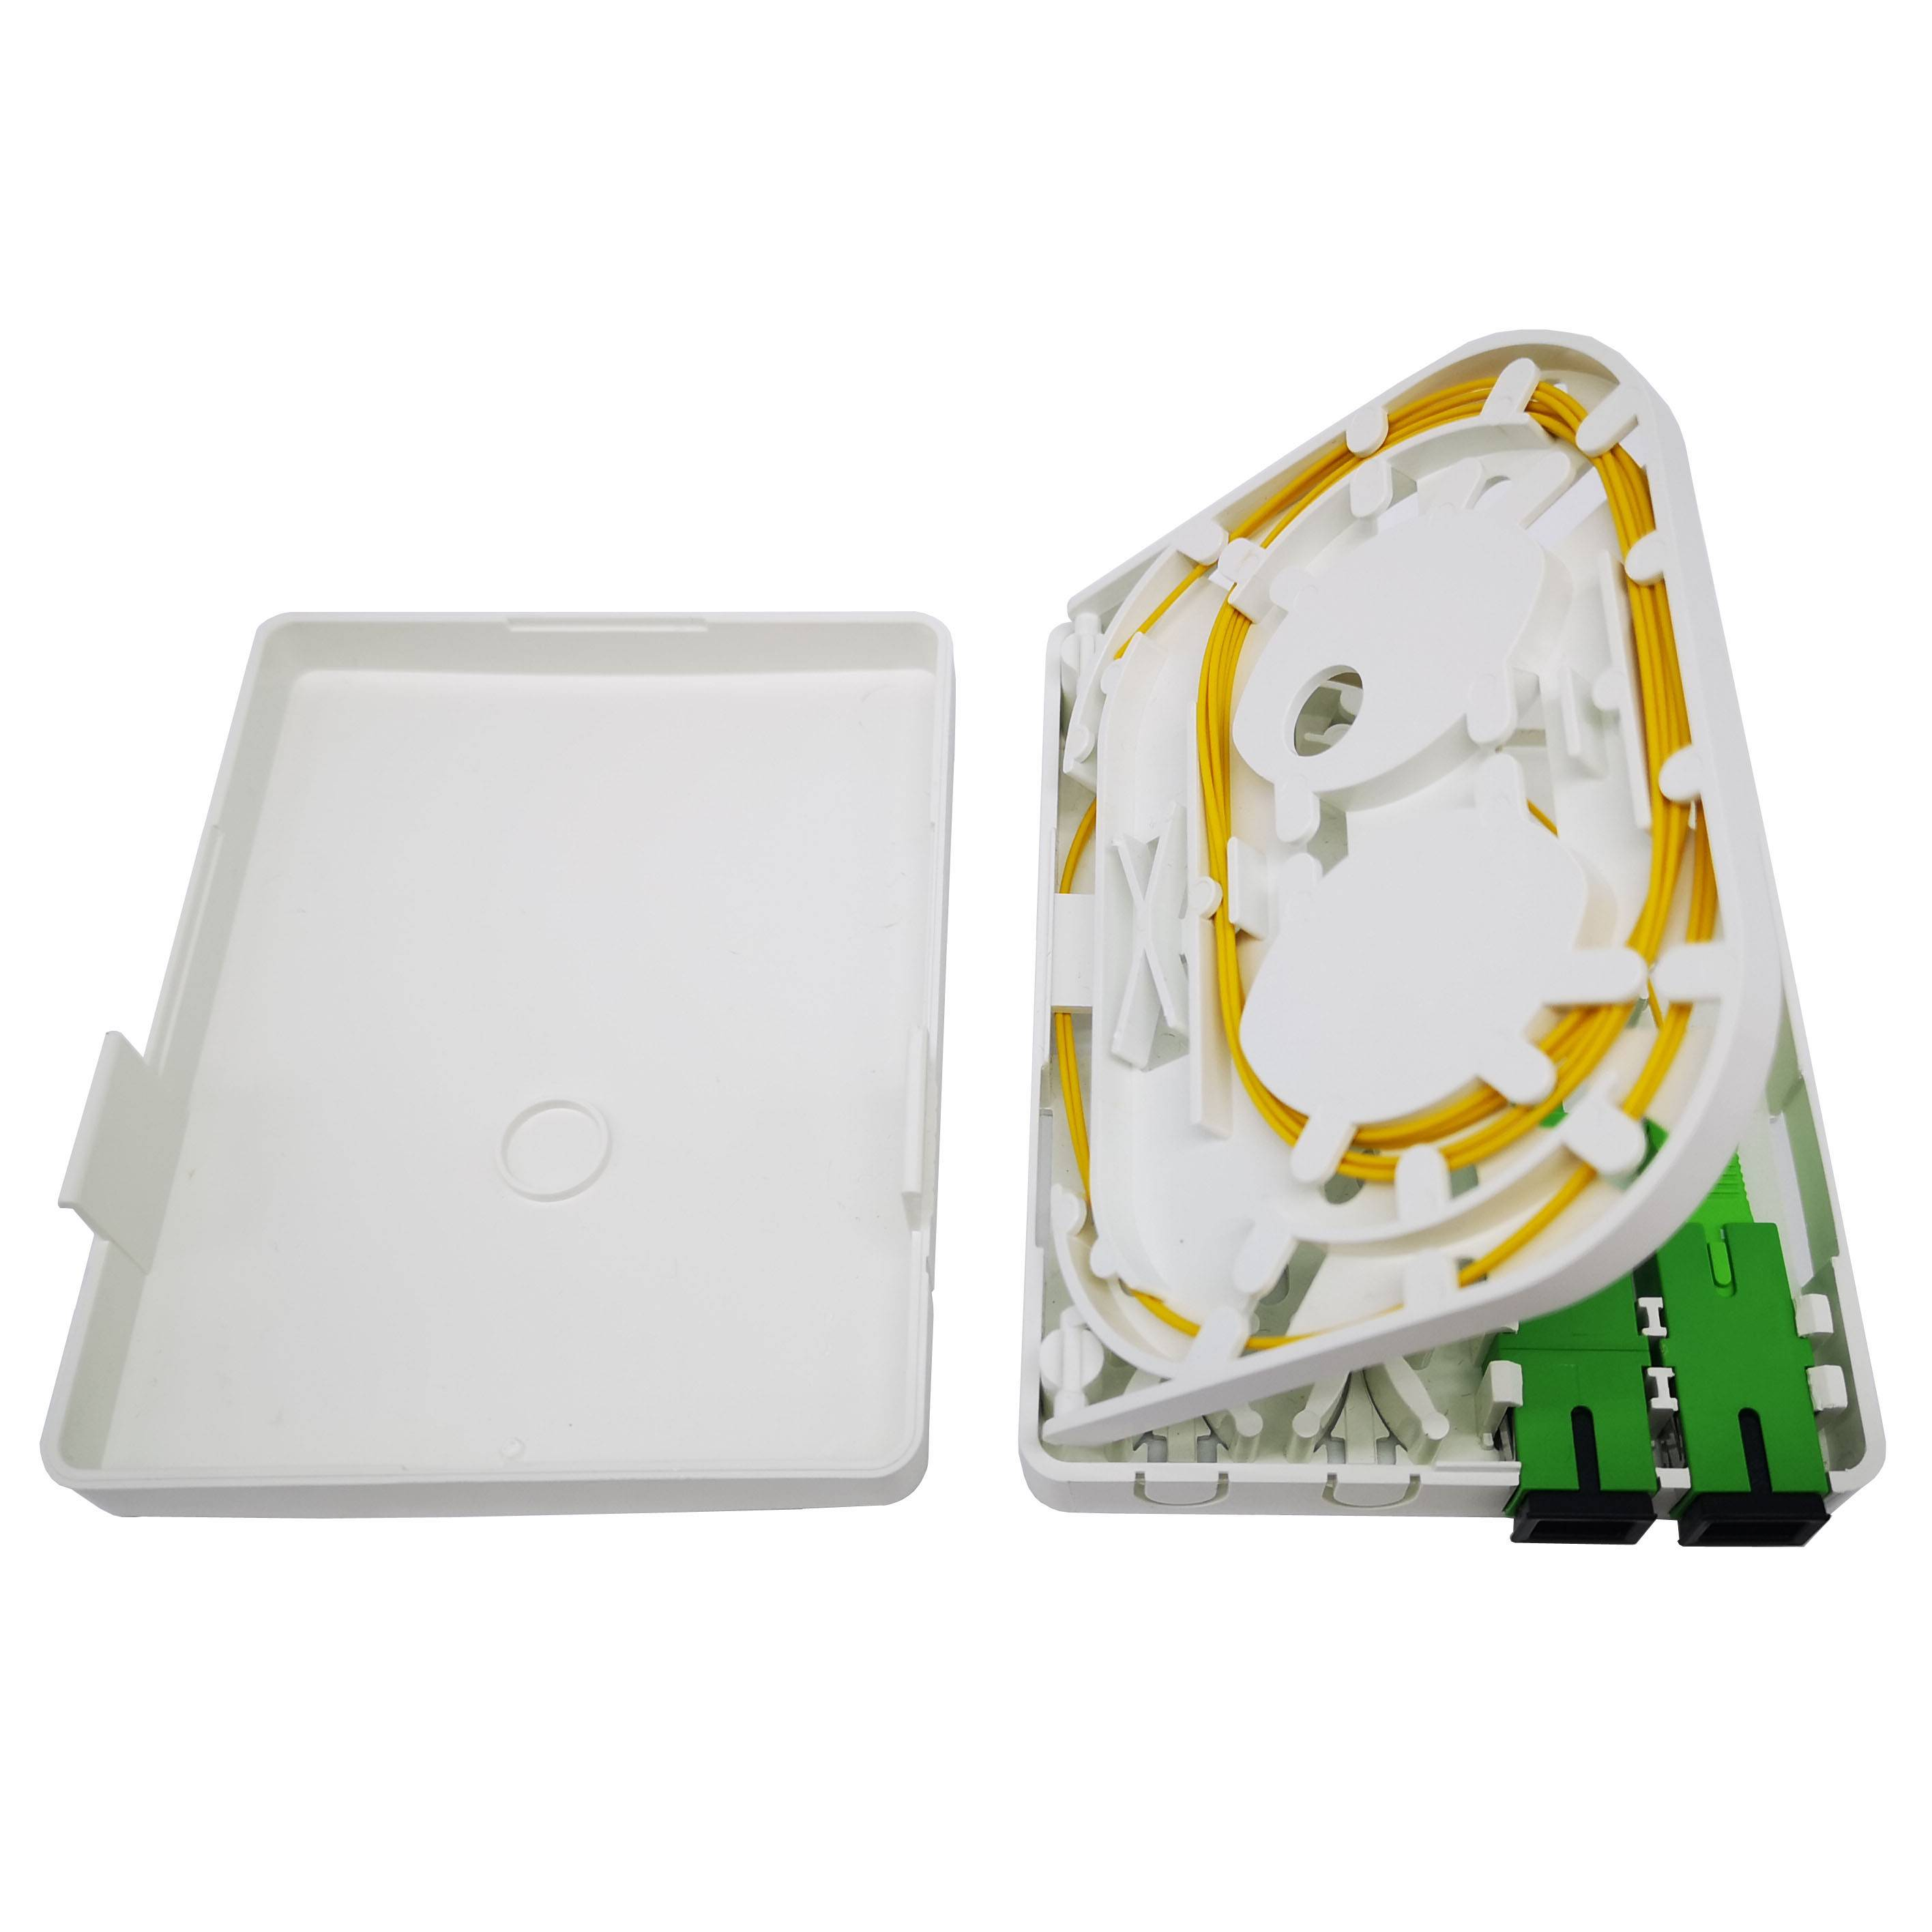 FTB86M fiber optic wall plate outlet  for 2 fibers